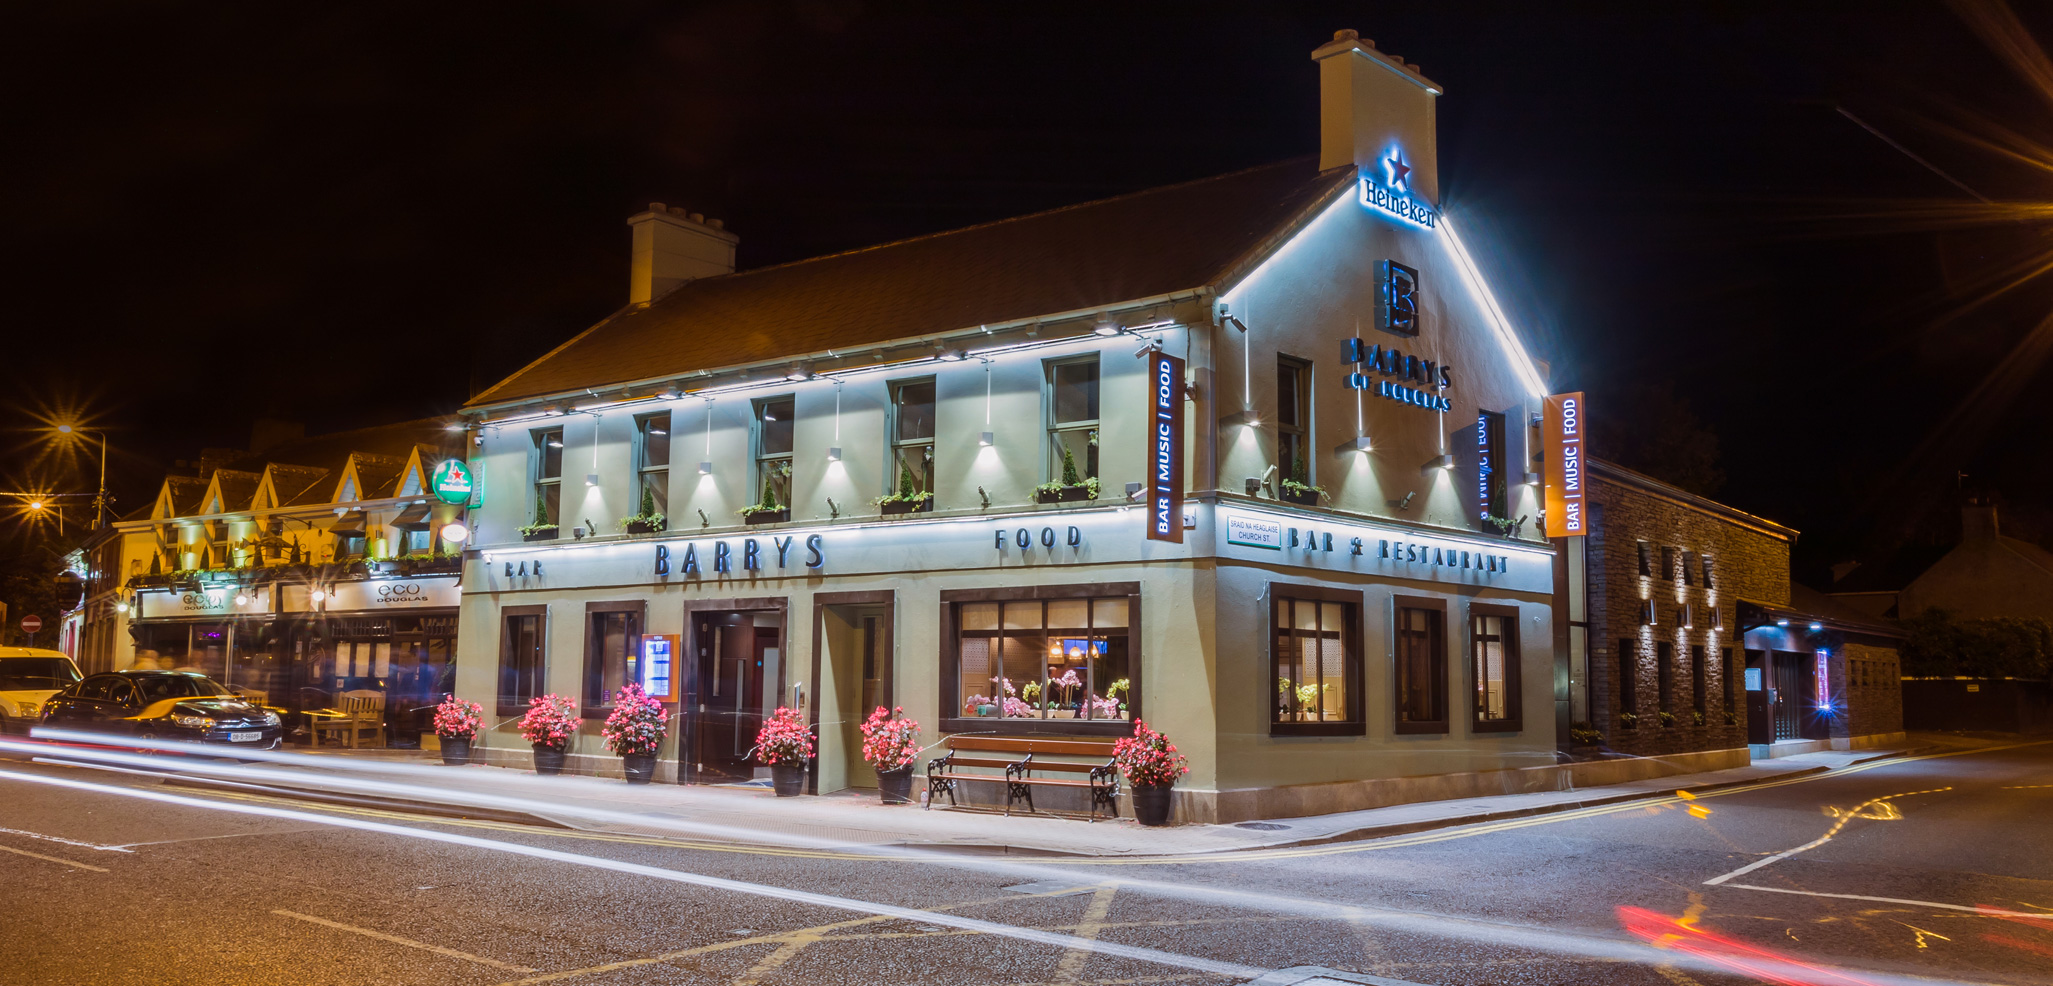 Barrys of Douglas Bar & Restaurant Situated in Douglas, Cork City